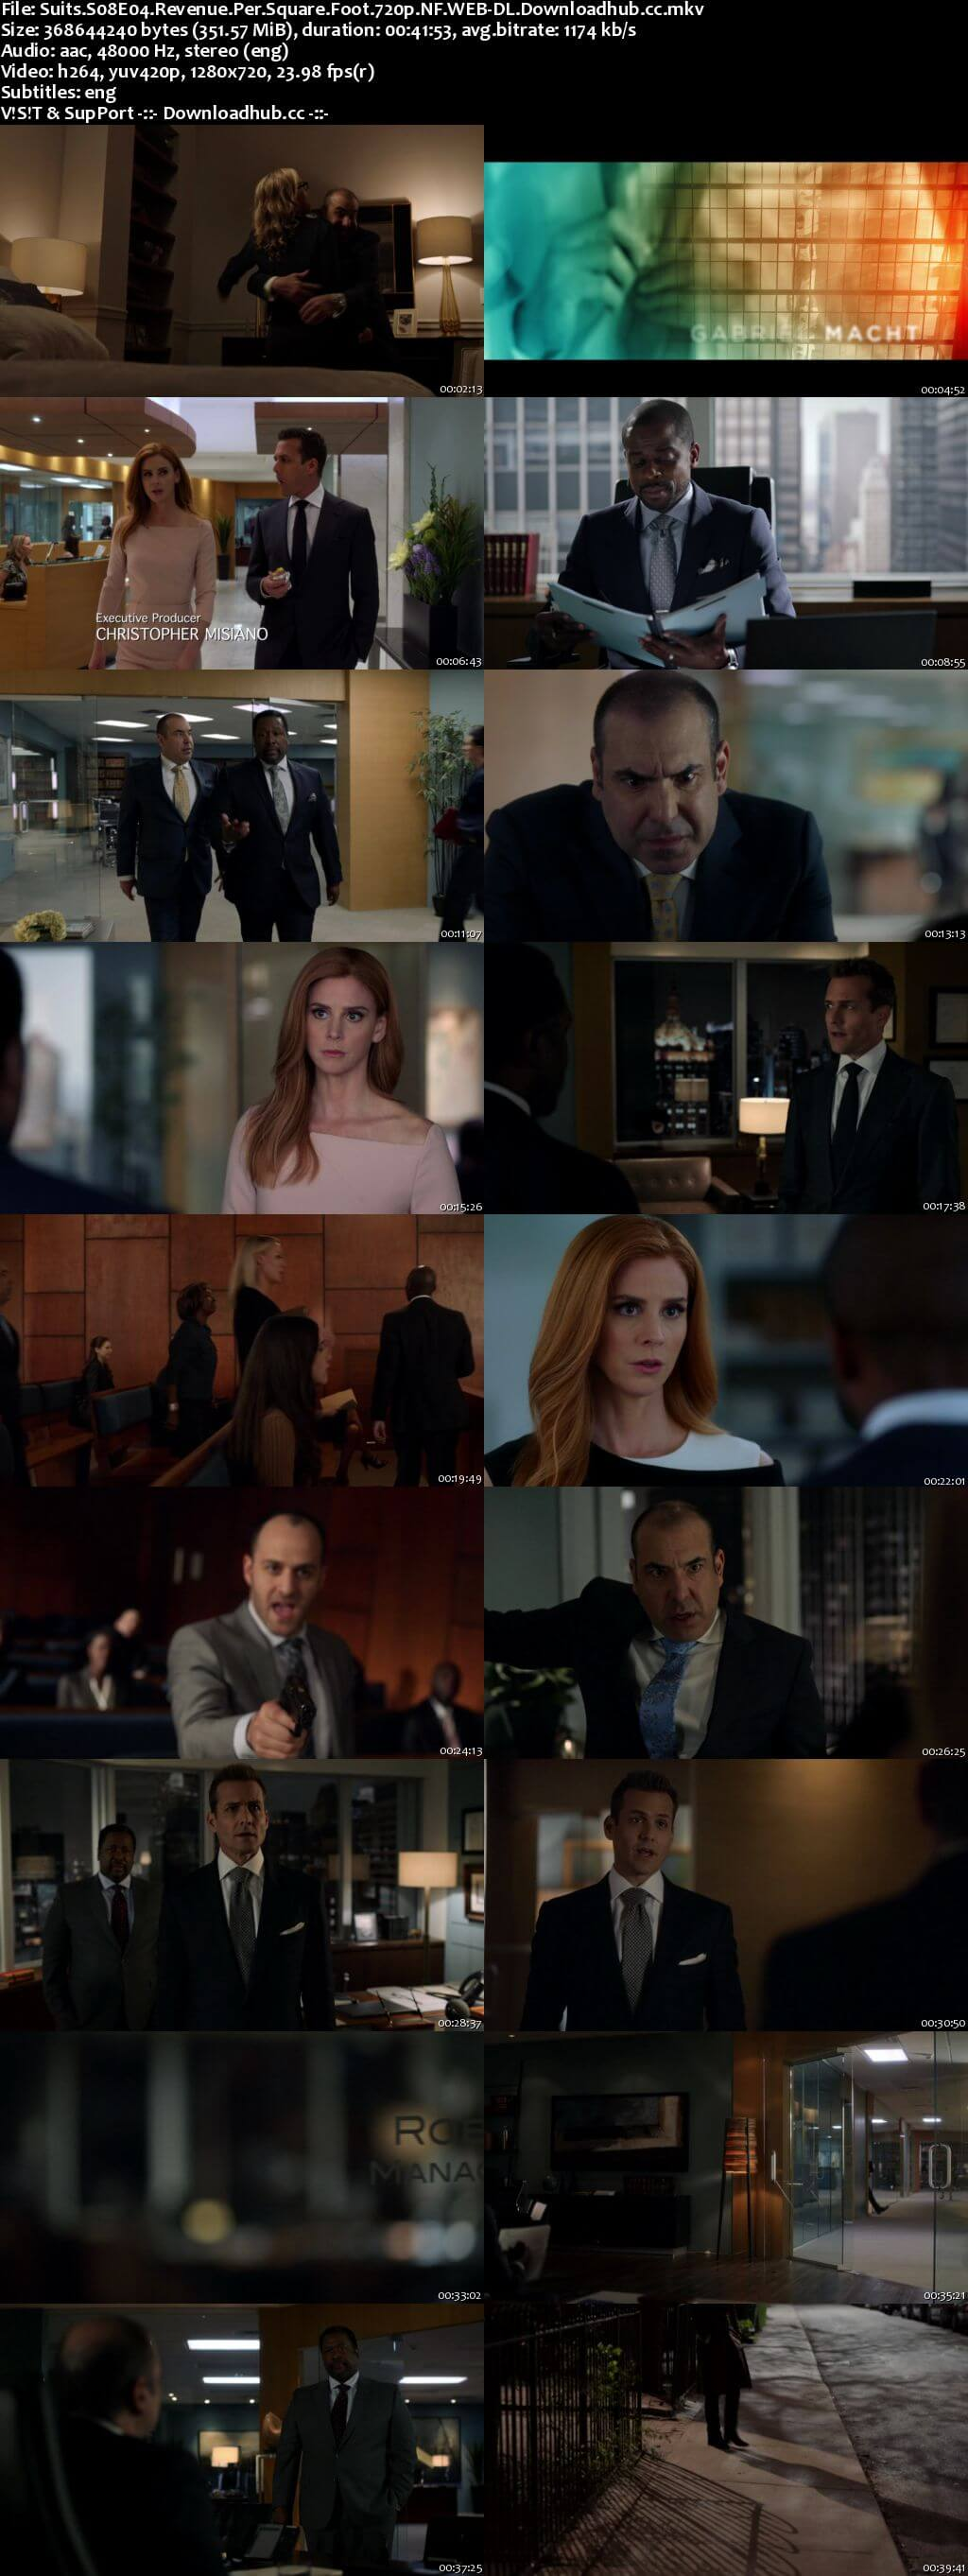 Suits S08E04 350MB Web-DL 720p x264 ESubs